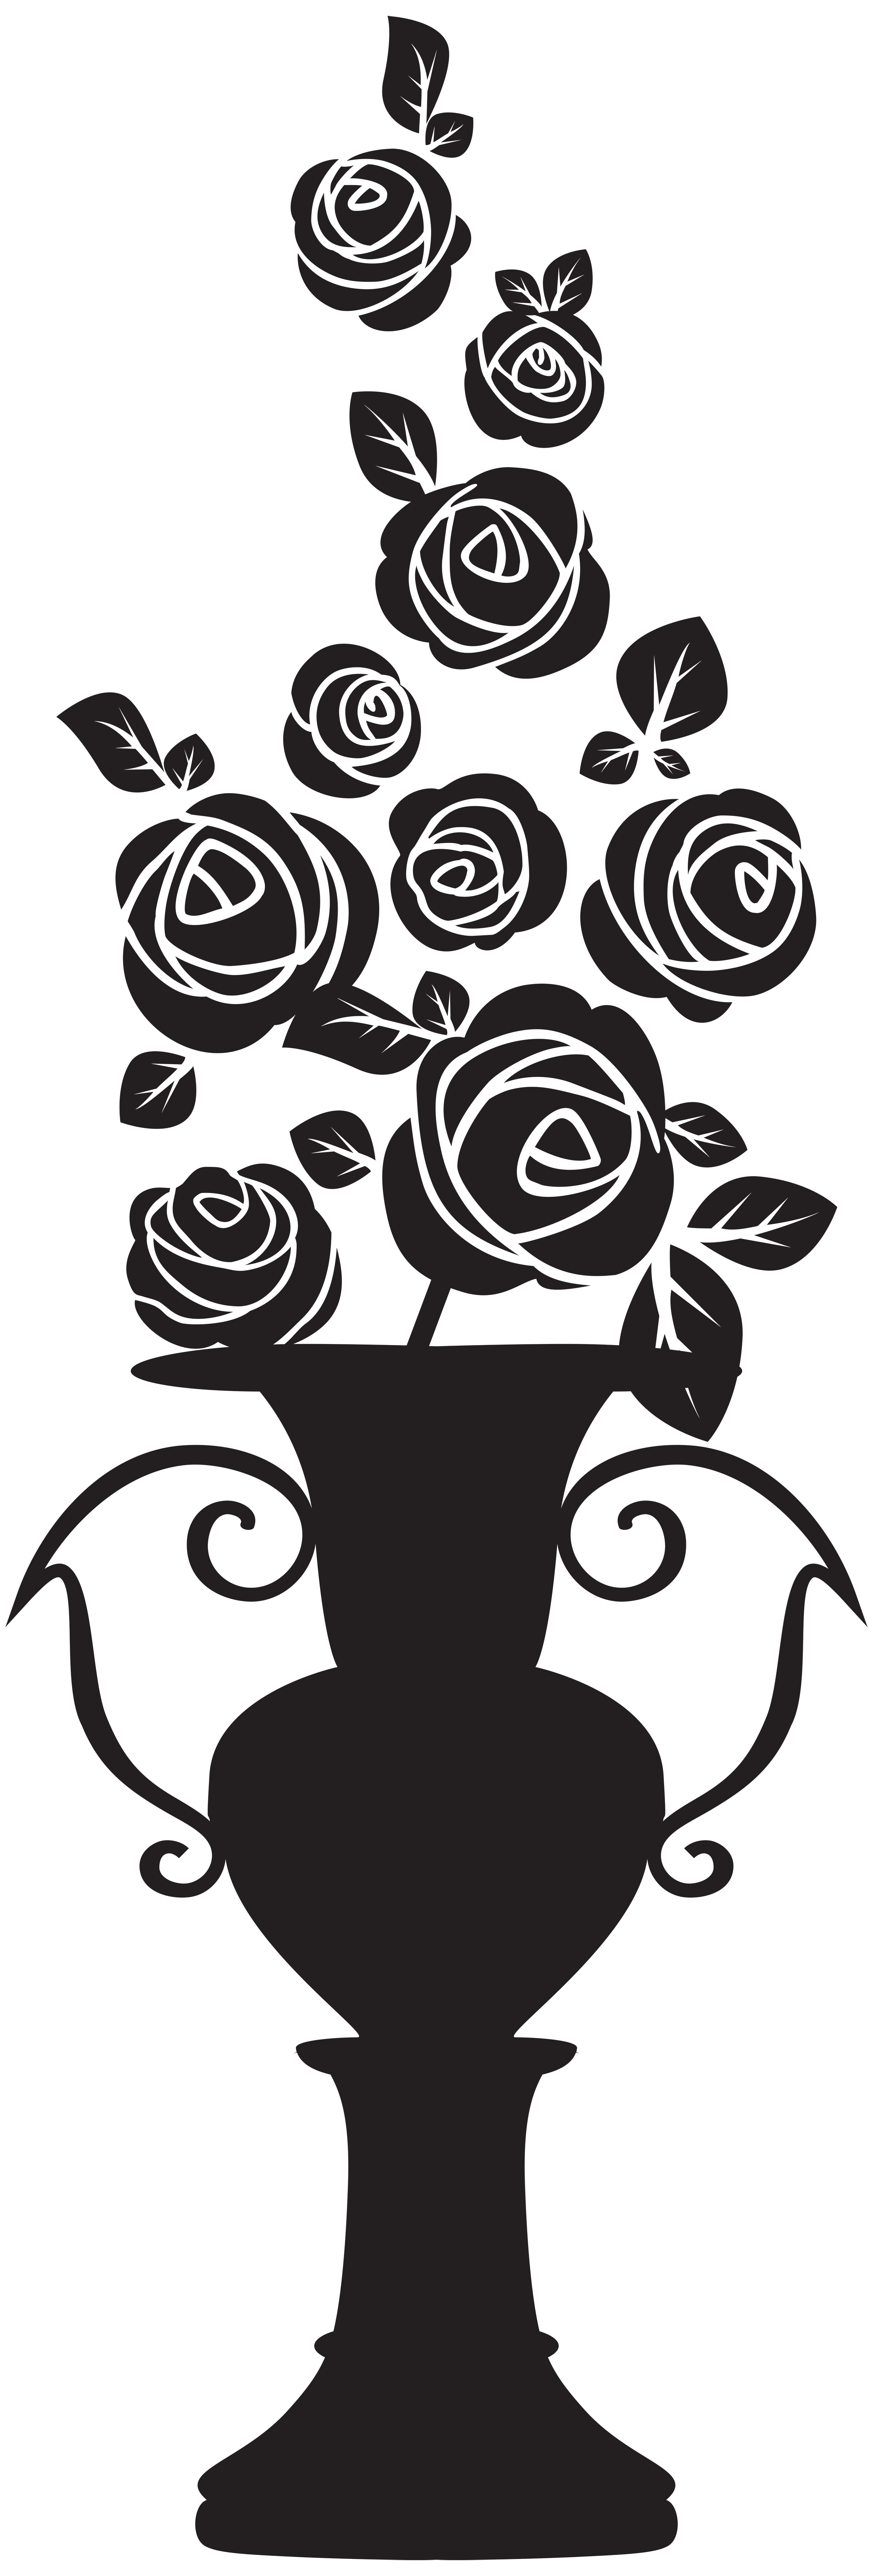 Flower vase clipart black and white banner freeuse download Vase with Roses Silhouette PNG Clip Art Image. View full size ... banner freeuse download